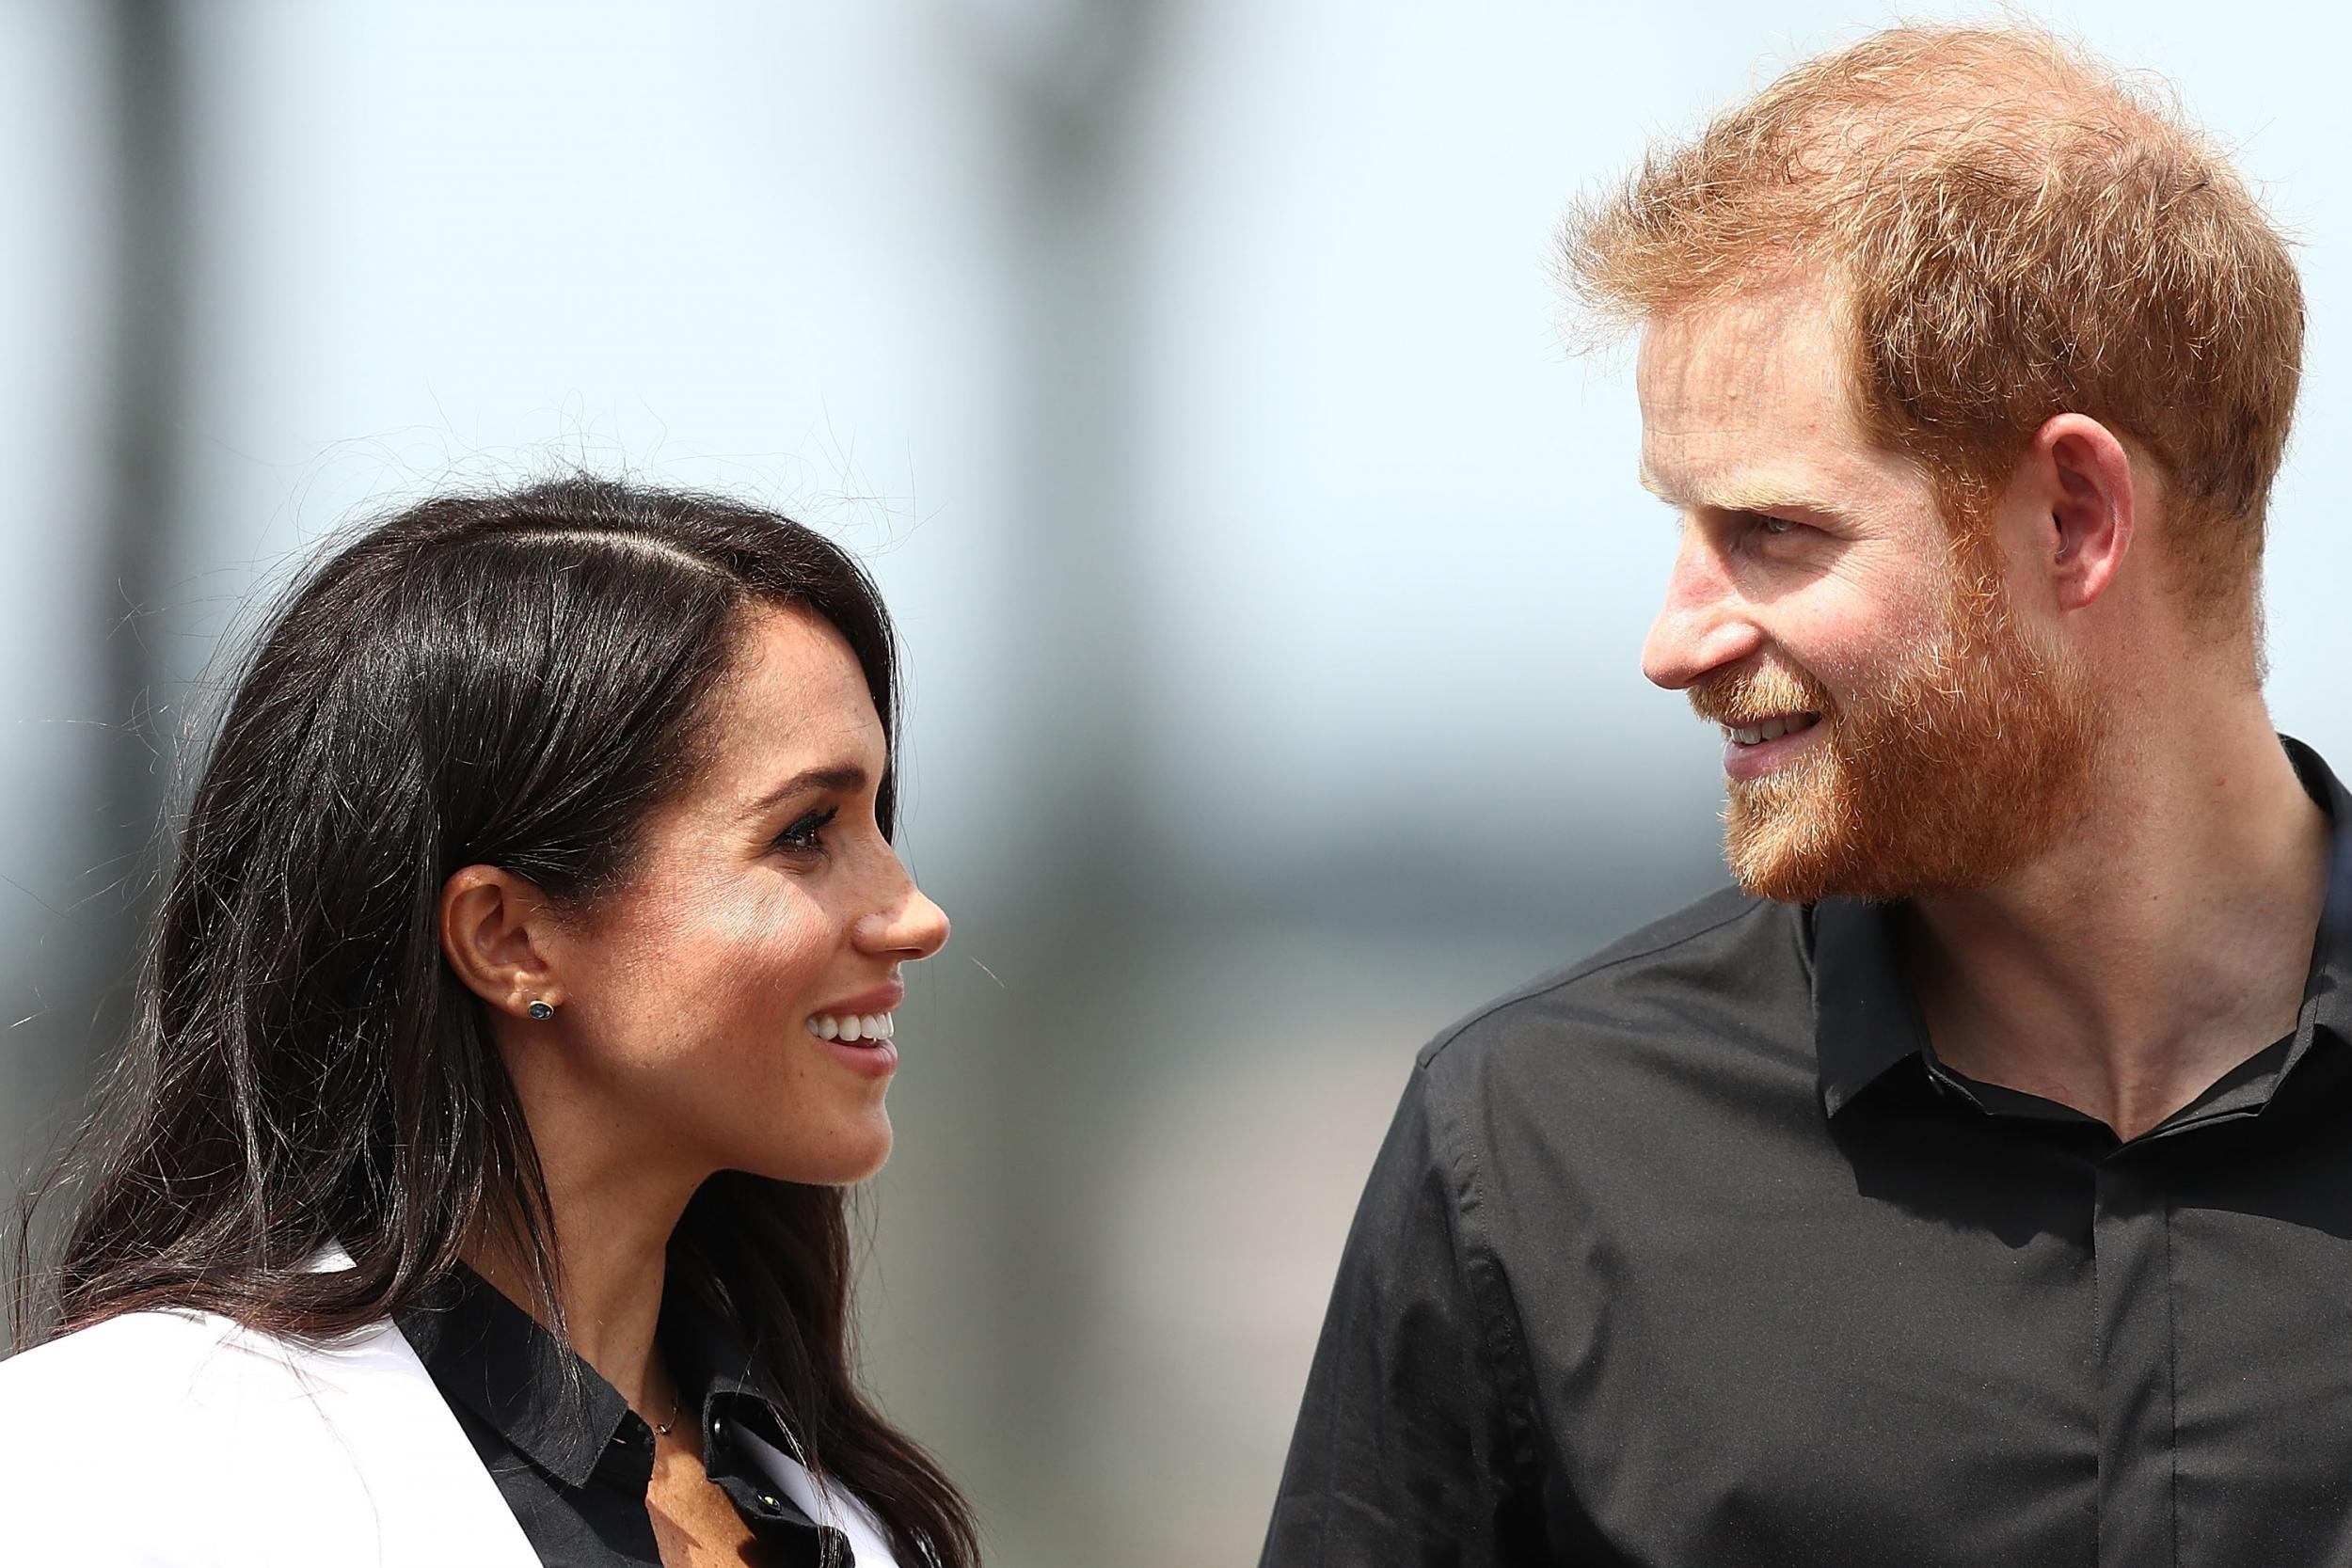 Prince Harry Uses Pure Australian Emu Oil While Pregnant